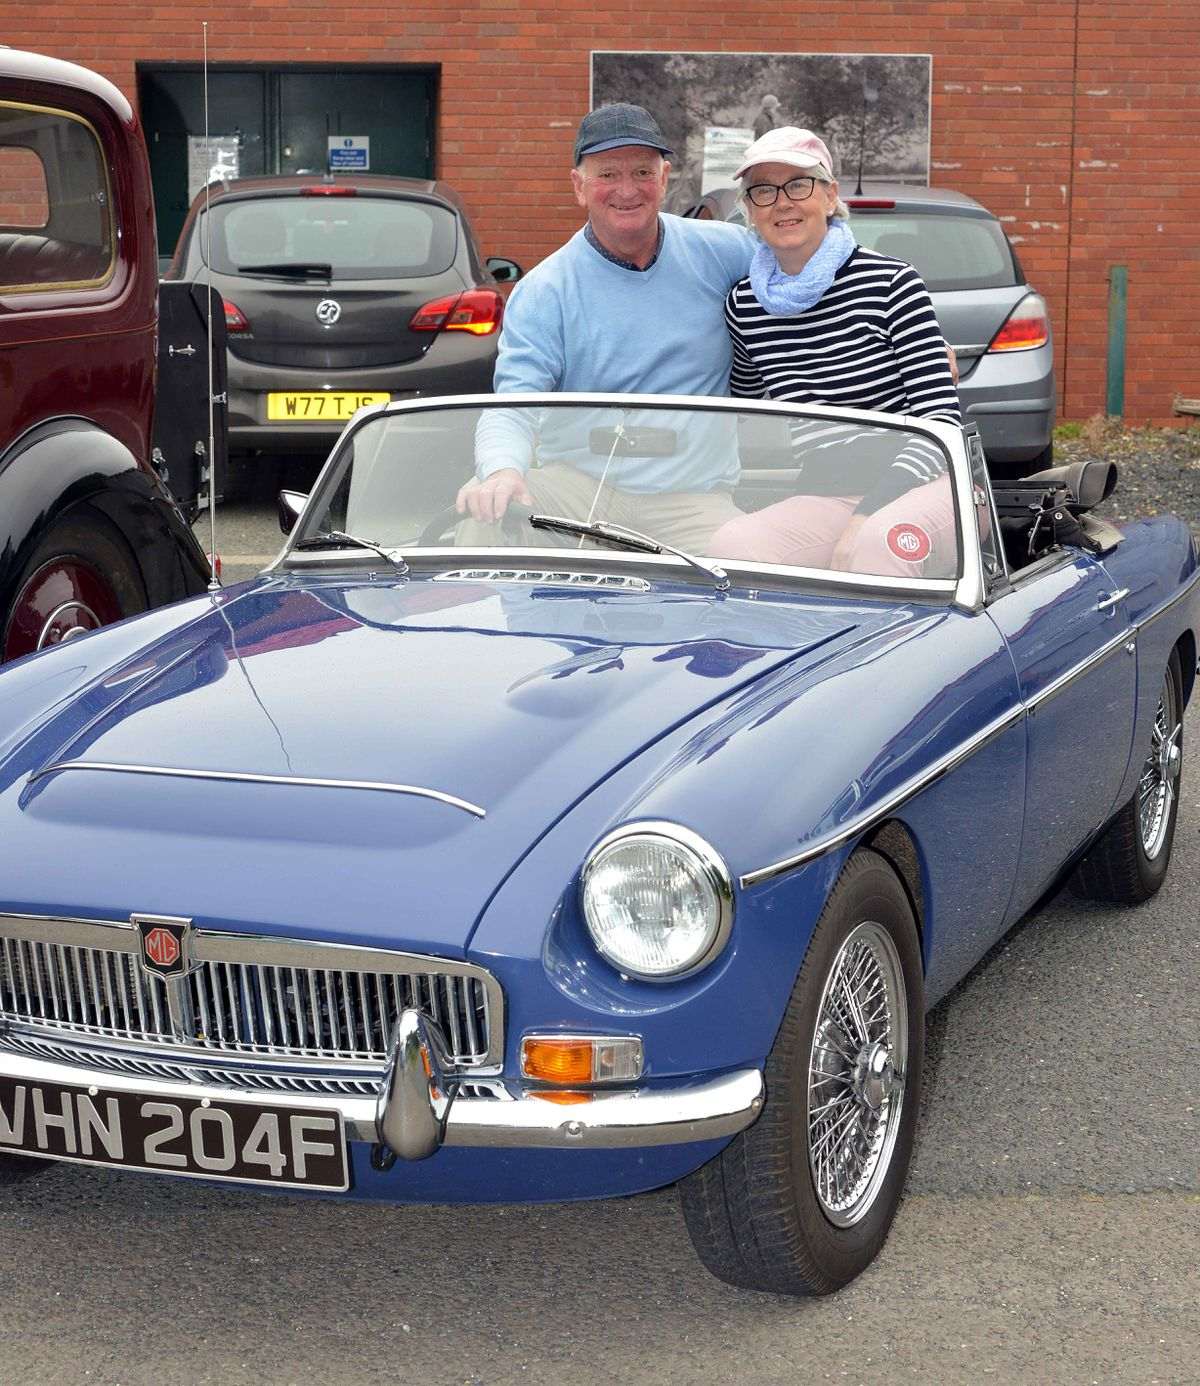 Tony and Jane Head with their 1968 MGC sports car